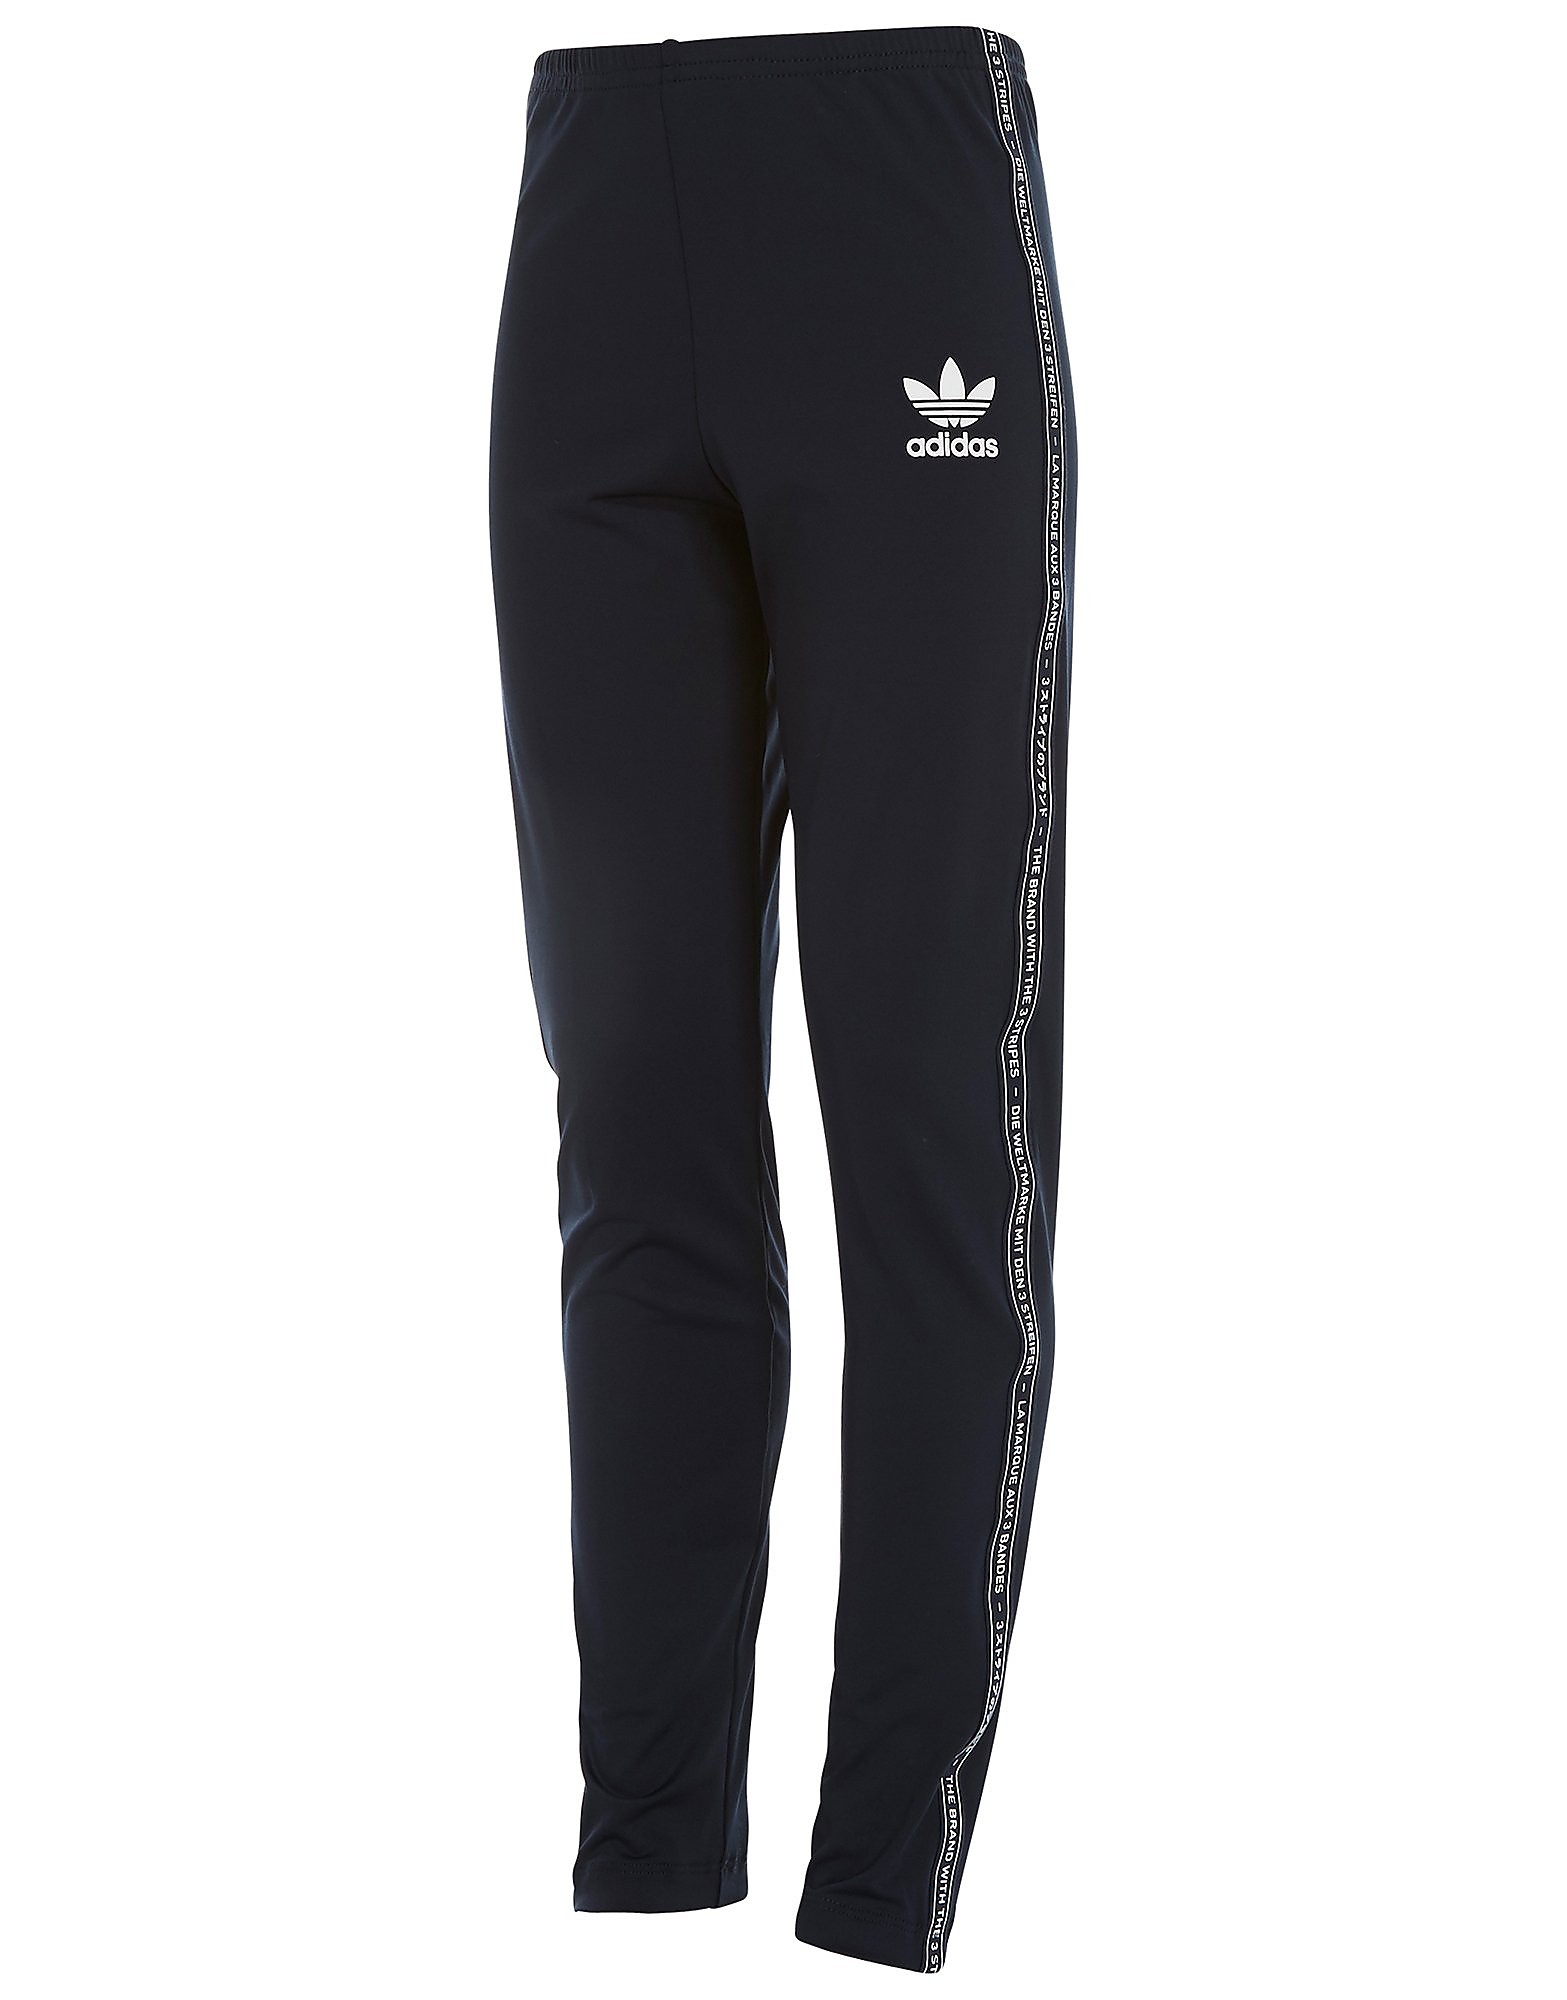 adidas Originals Girls' NMD Leggings Junior